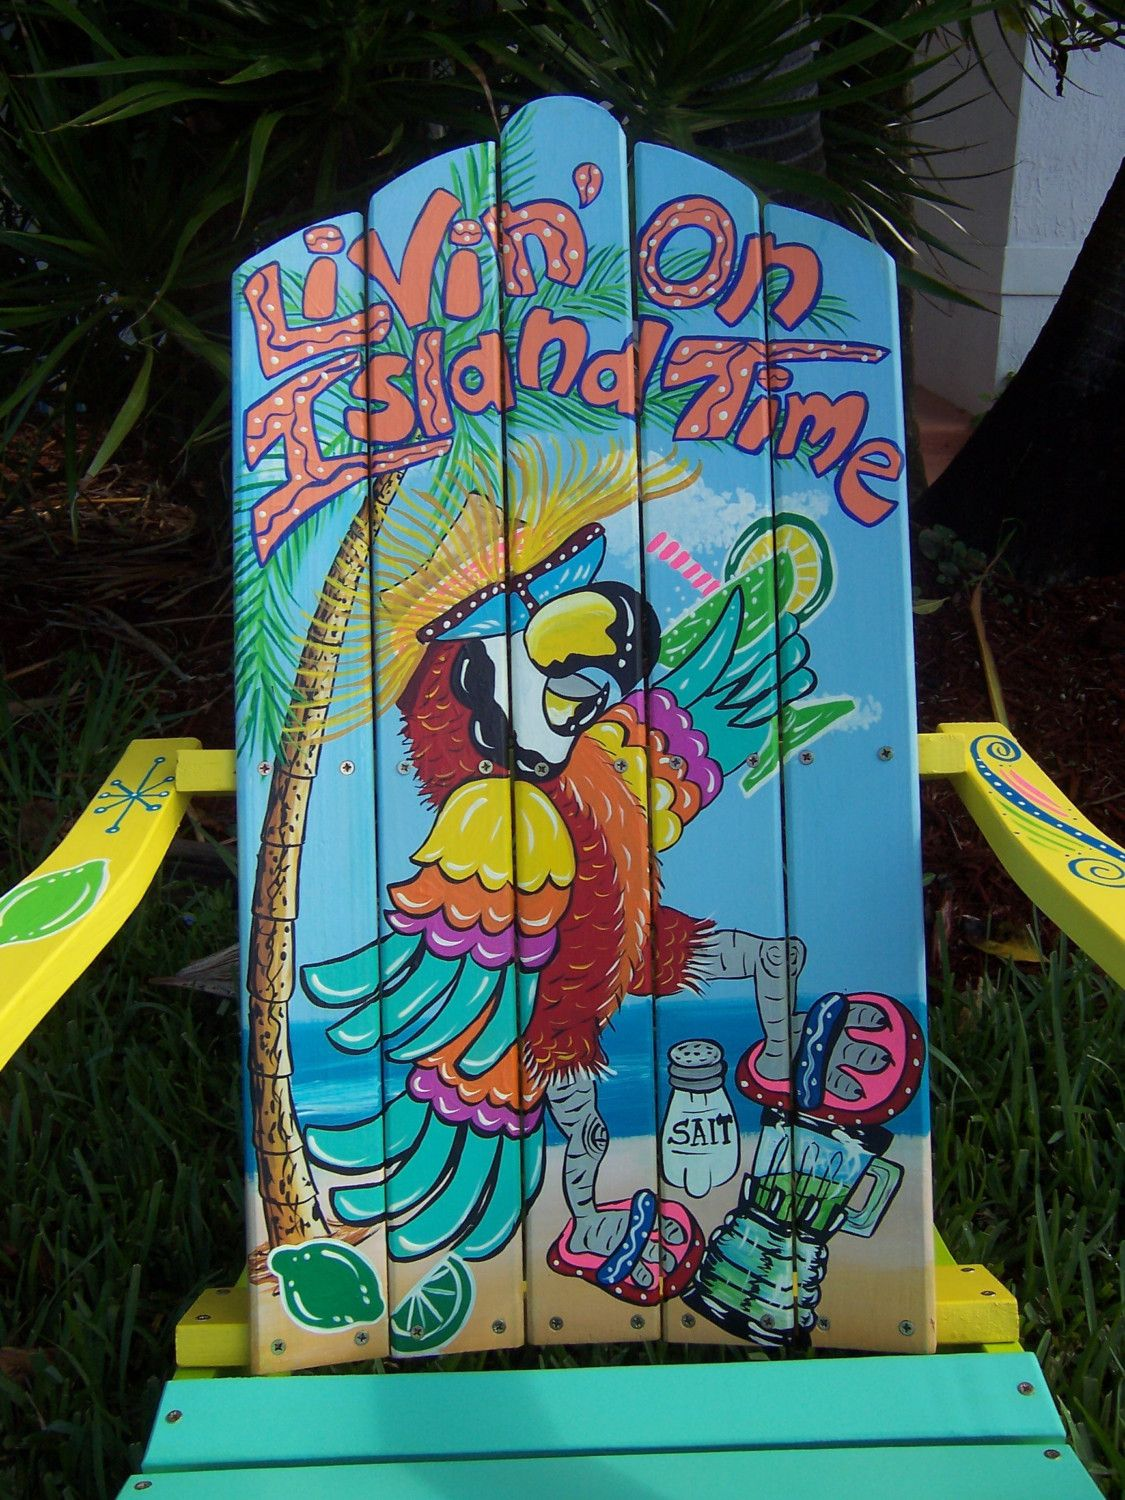 Painted chairs pinterest - Tropical Adirondack Chair Handcrafted Hand Painted Livin On Island Time Parrot Margarita 375 00 Via